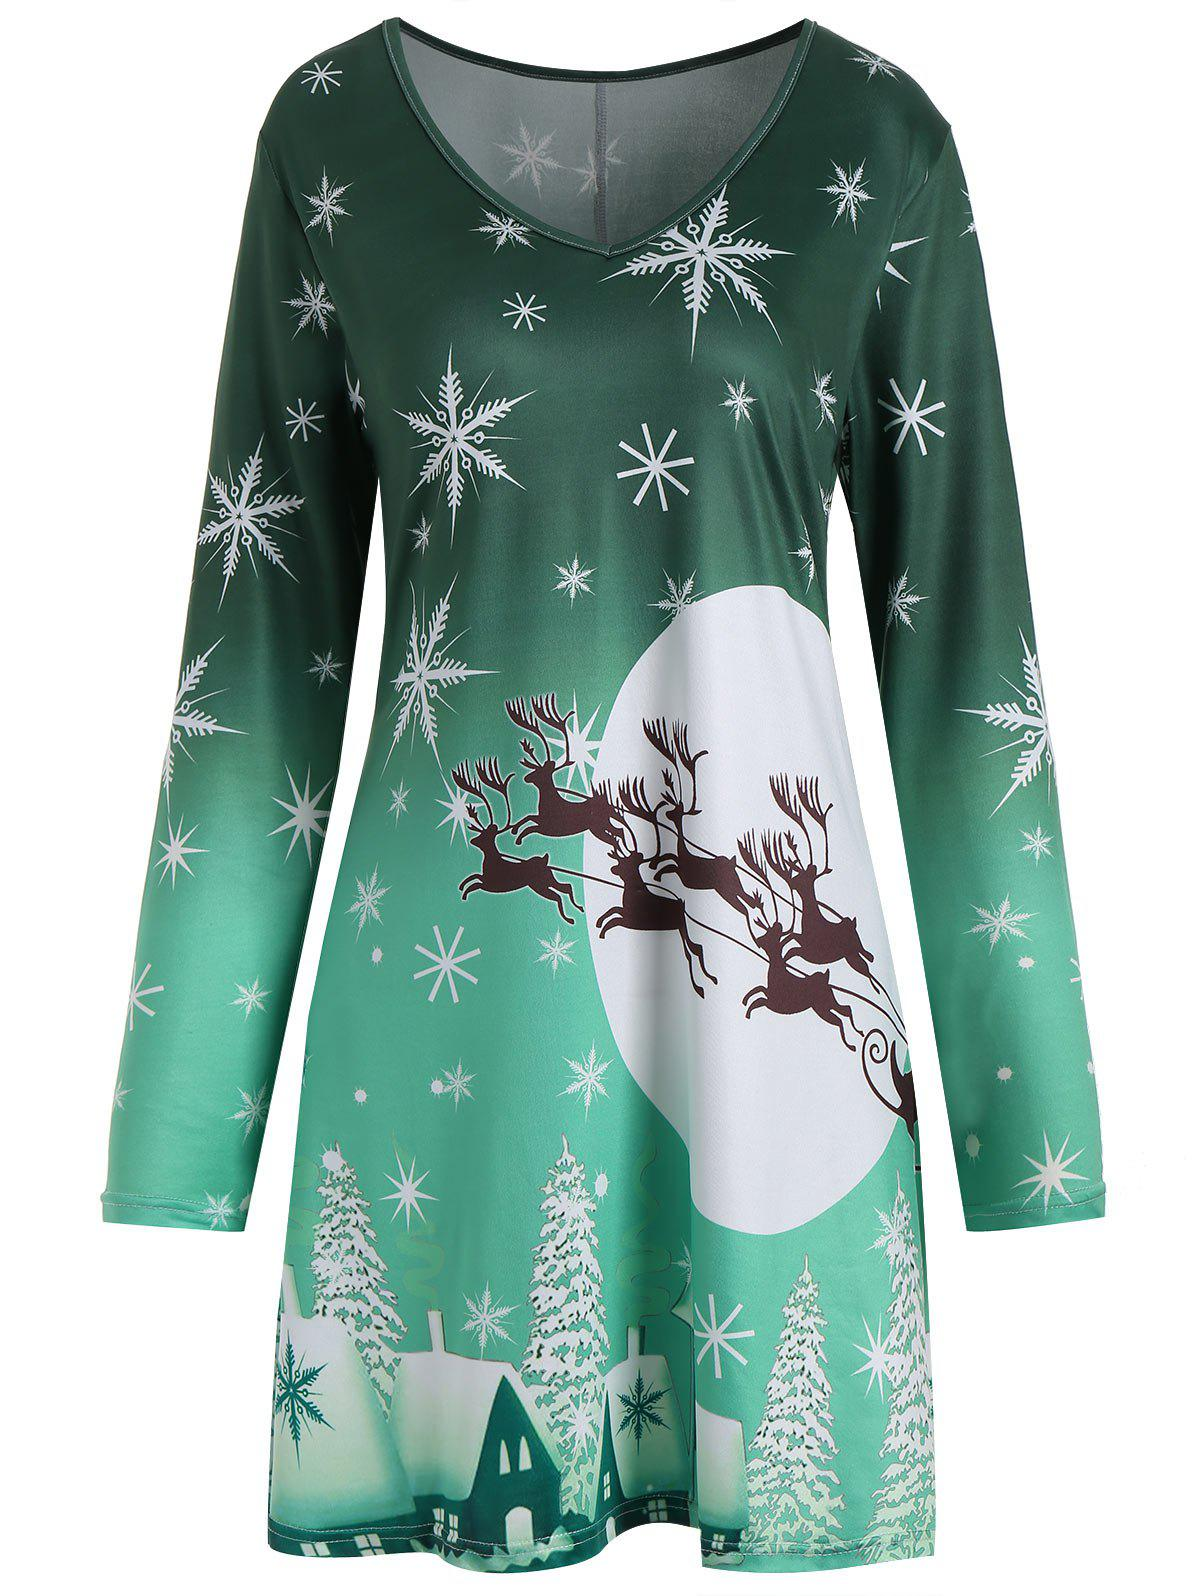 Christmas Snowflake Sled Moon Print Plus Size T Shirt DressWOMEN<br><br>Size: 5XL; Color: GREEN; Style: Casual; Material: Polyester; Silhouette: A-Line; Dresses Length: Mini; Neckline: V-Neck; Sleeve Length: Long Sleeves; Pattern Type: Animal,Moon,Plant; With Belt: No; Season: Fall,Spring,Winter; Weight: 0.2500kg; Package Contents: 1 x Dress;